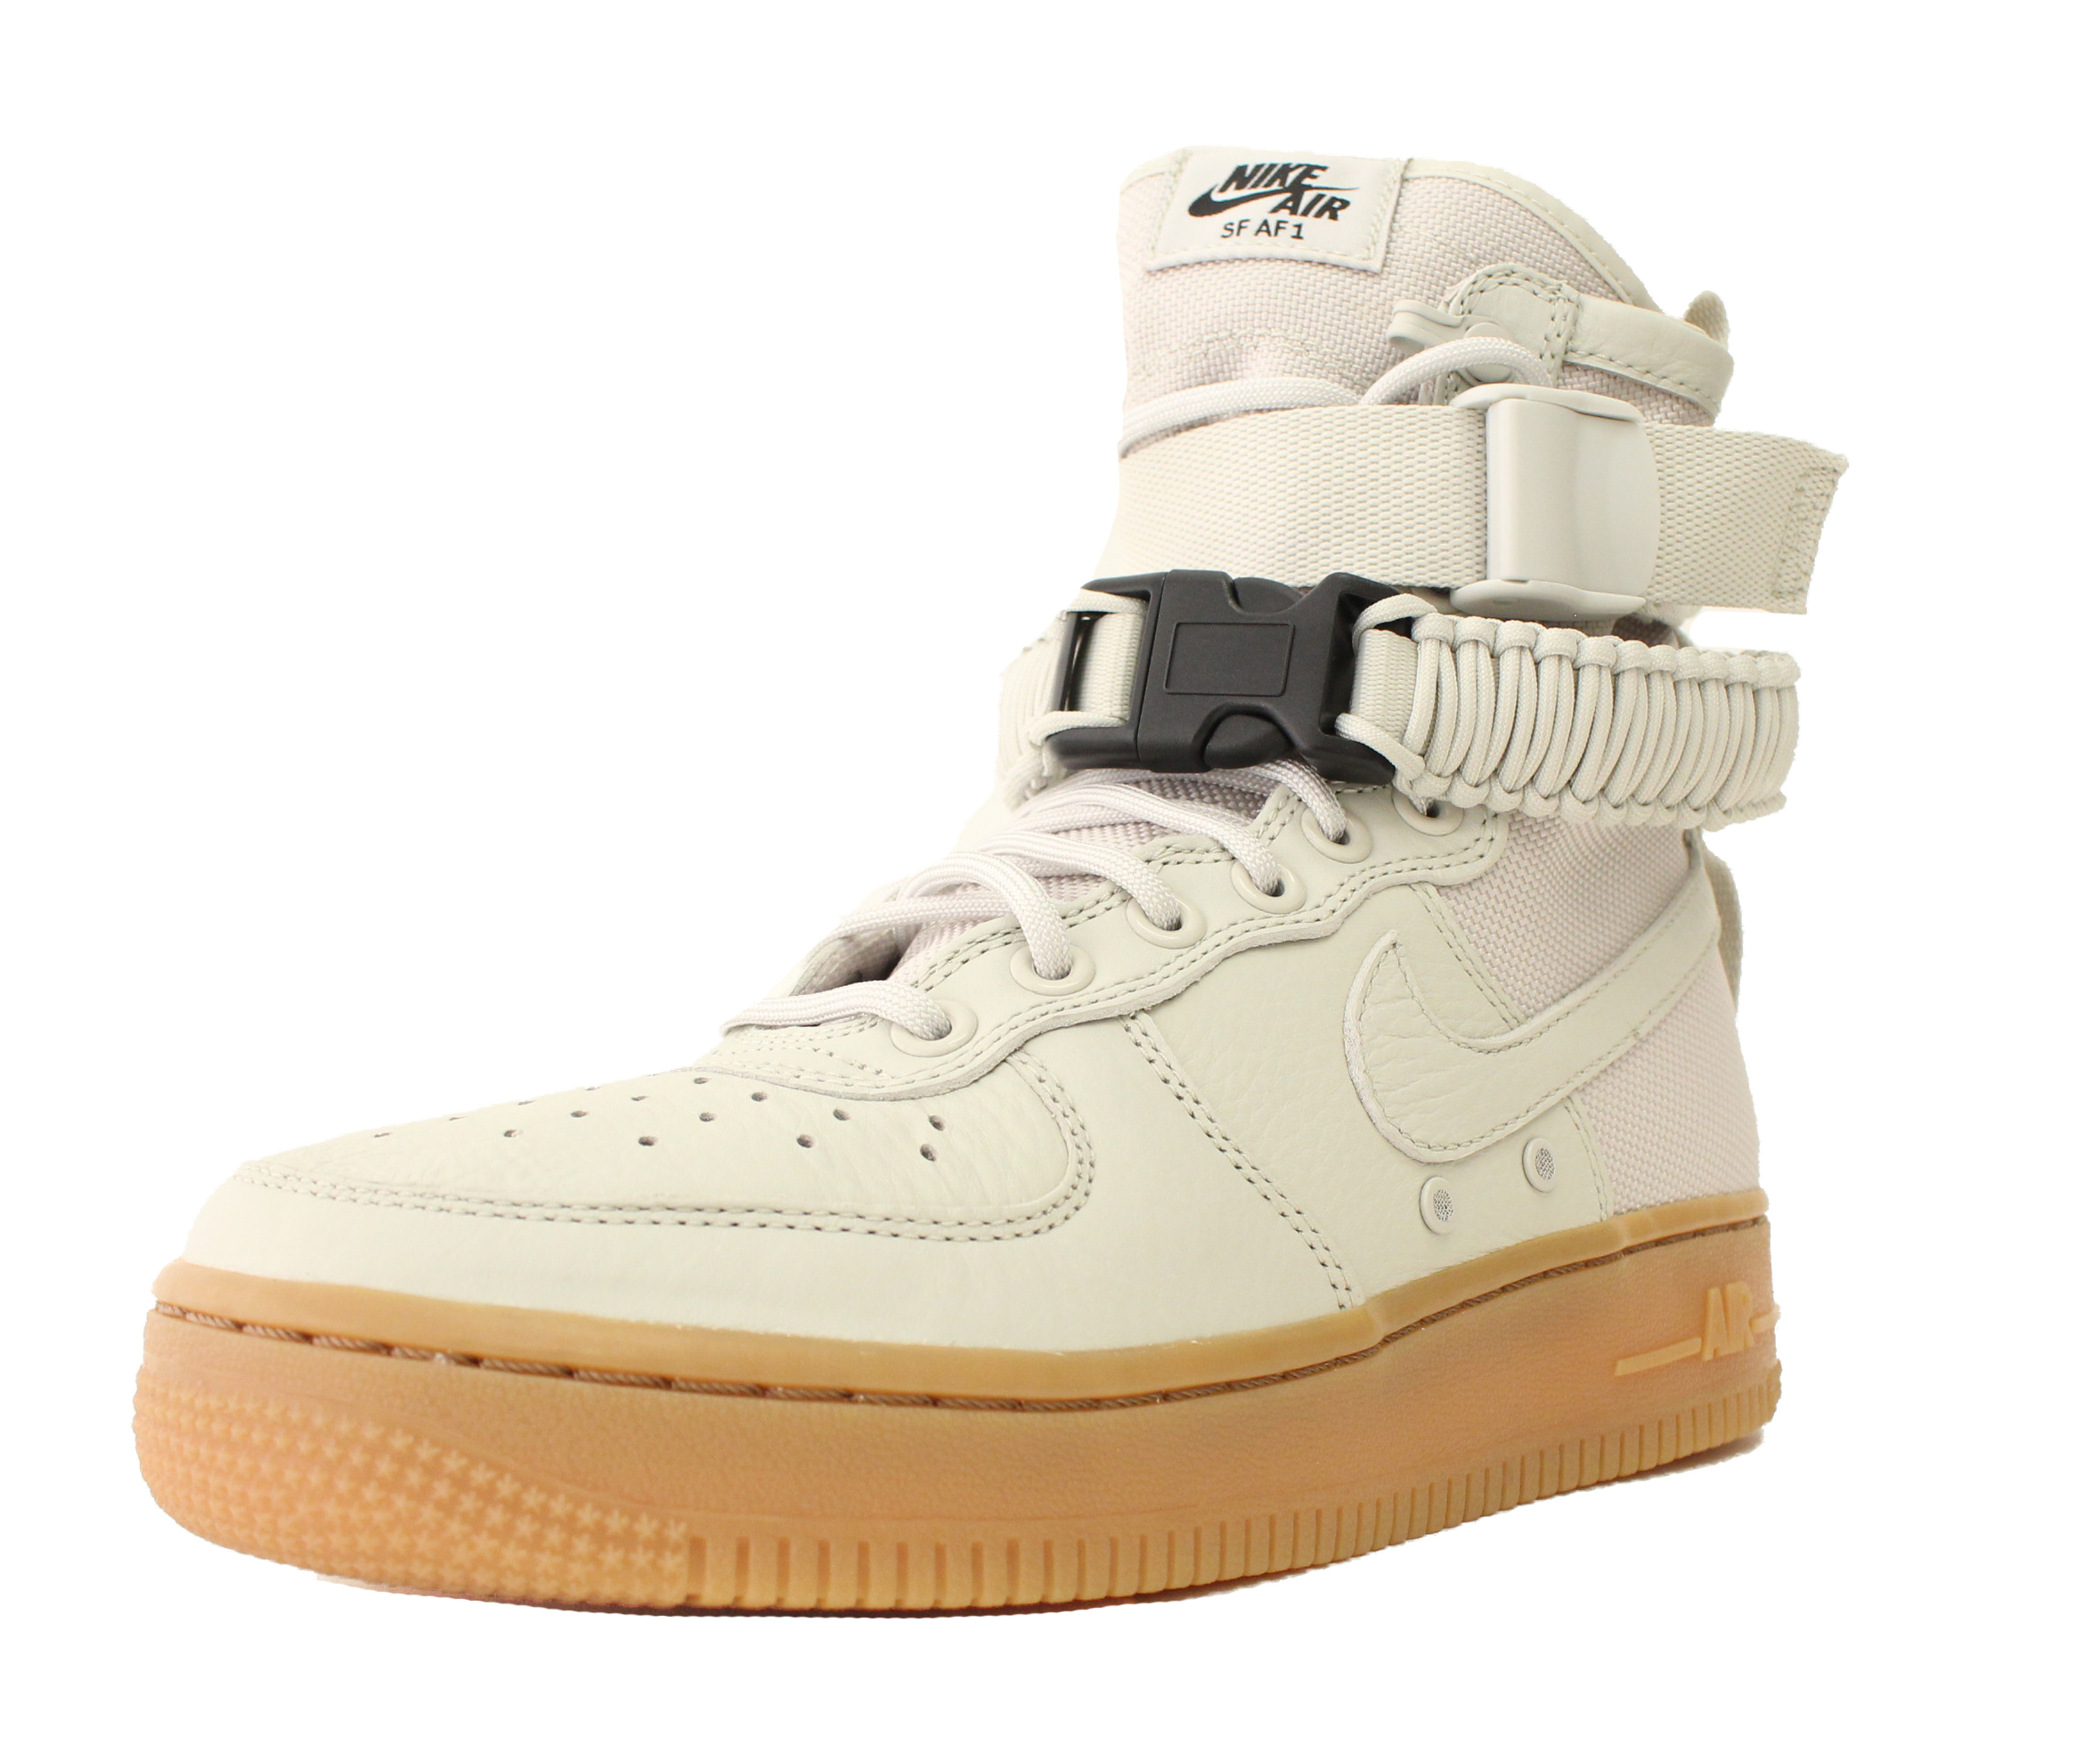 857872 004 NIKE WMNS SF AF1 AIR FORCE 1 HIGH  LIGHT BONE SPECIAL FIELD SZ 8.5